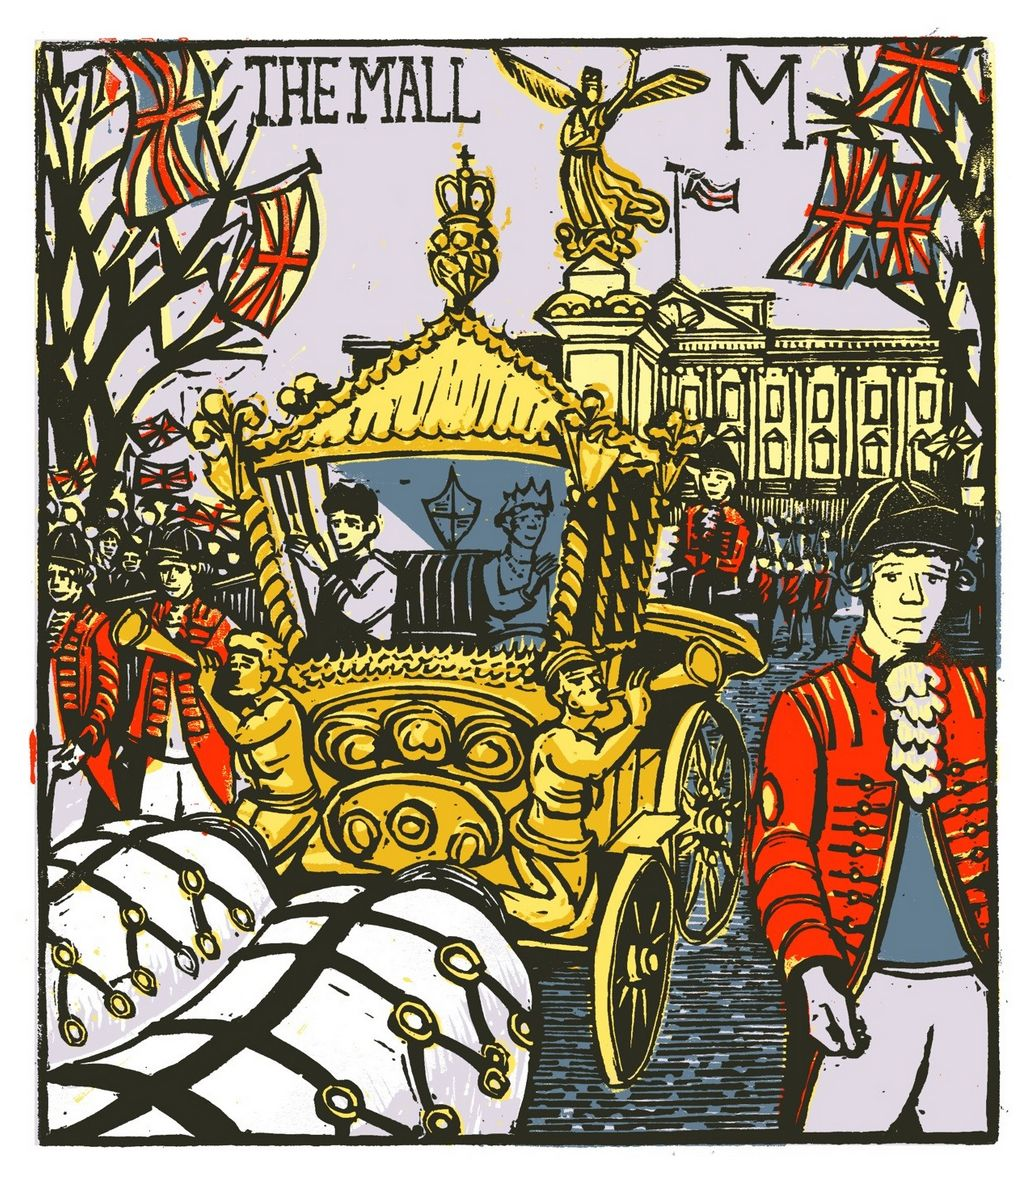 """M - The Mall"" from ""London A-Z"" Complete Boxed Set linocuts by Tobias Till, 2012. http://www.tobias-till.co.uk/. Tags: Linocut, Cut, Print, Linoleum, Lino, Carving, Block, Woodcut, Helen Elstone, Buildings, Architecture, Queen's Carriage, Horses, People, Footmen, Gold State Coach."